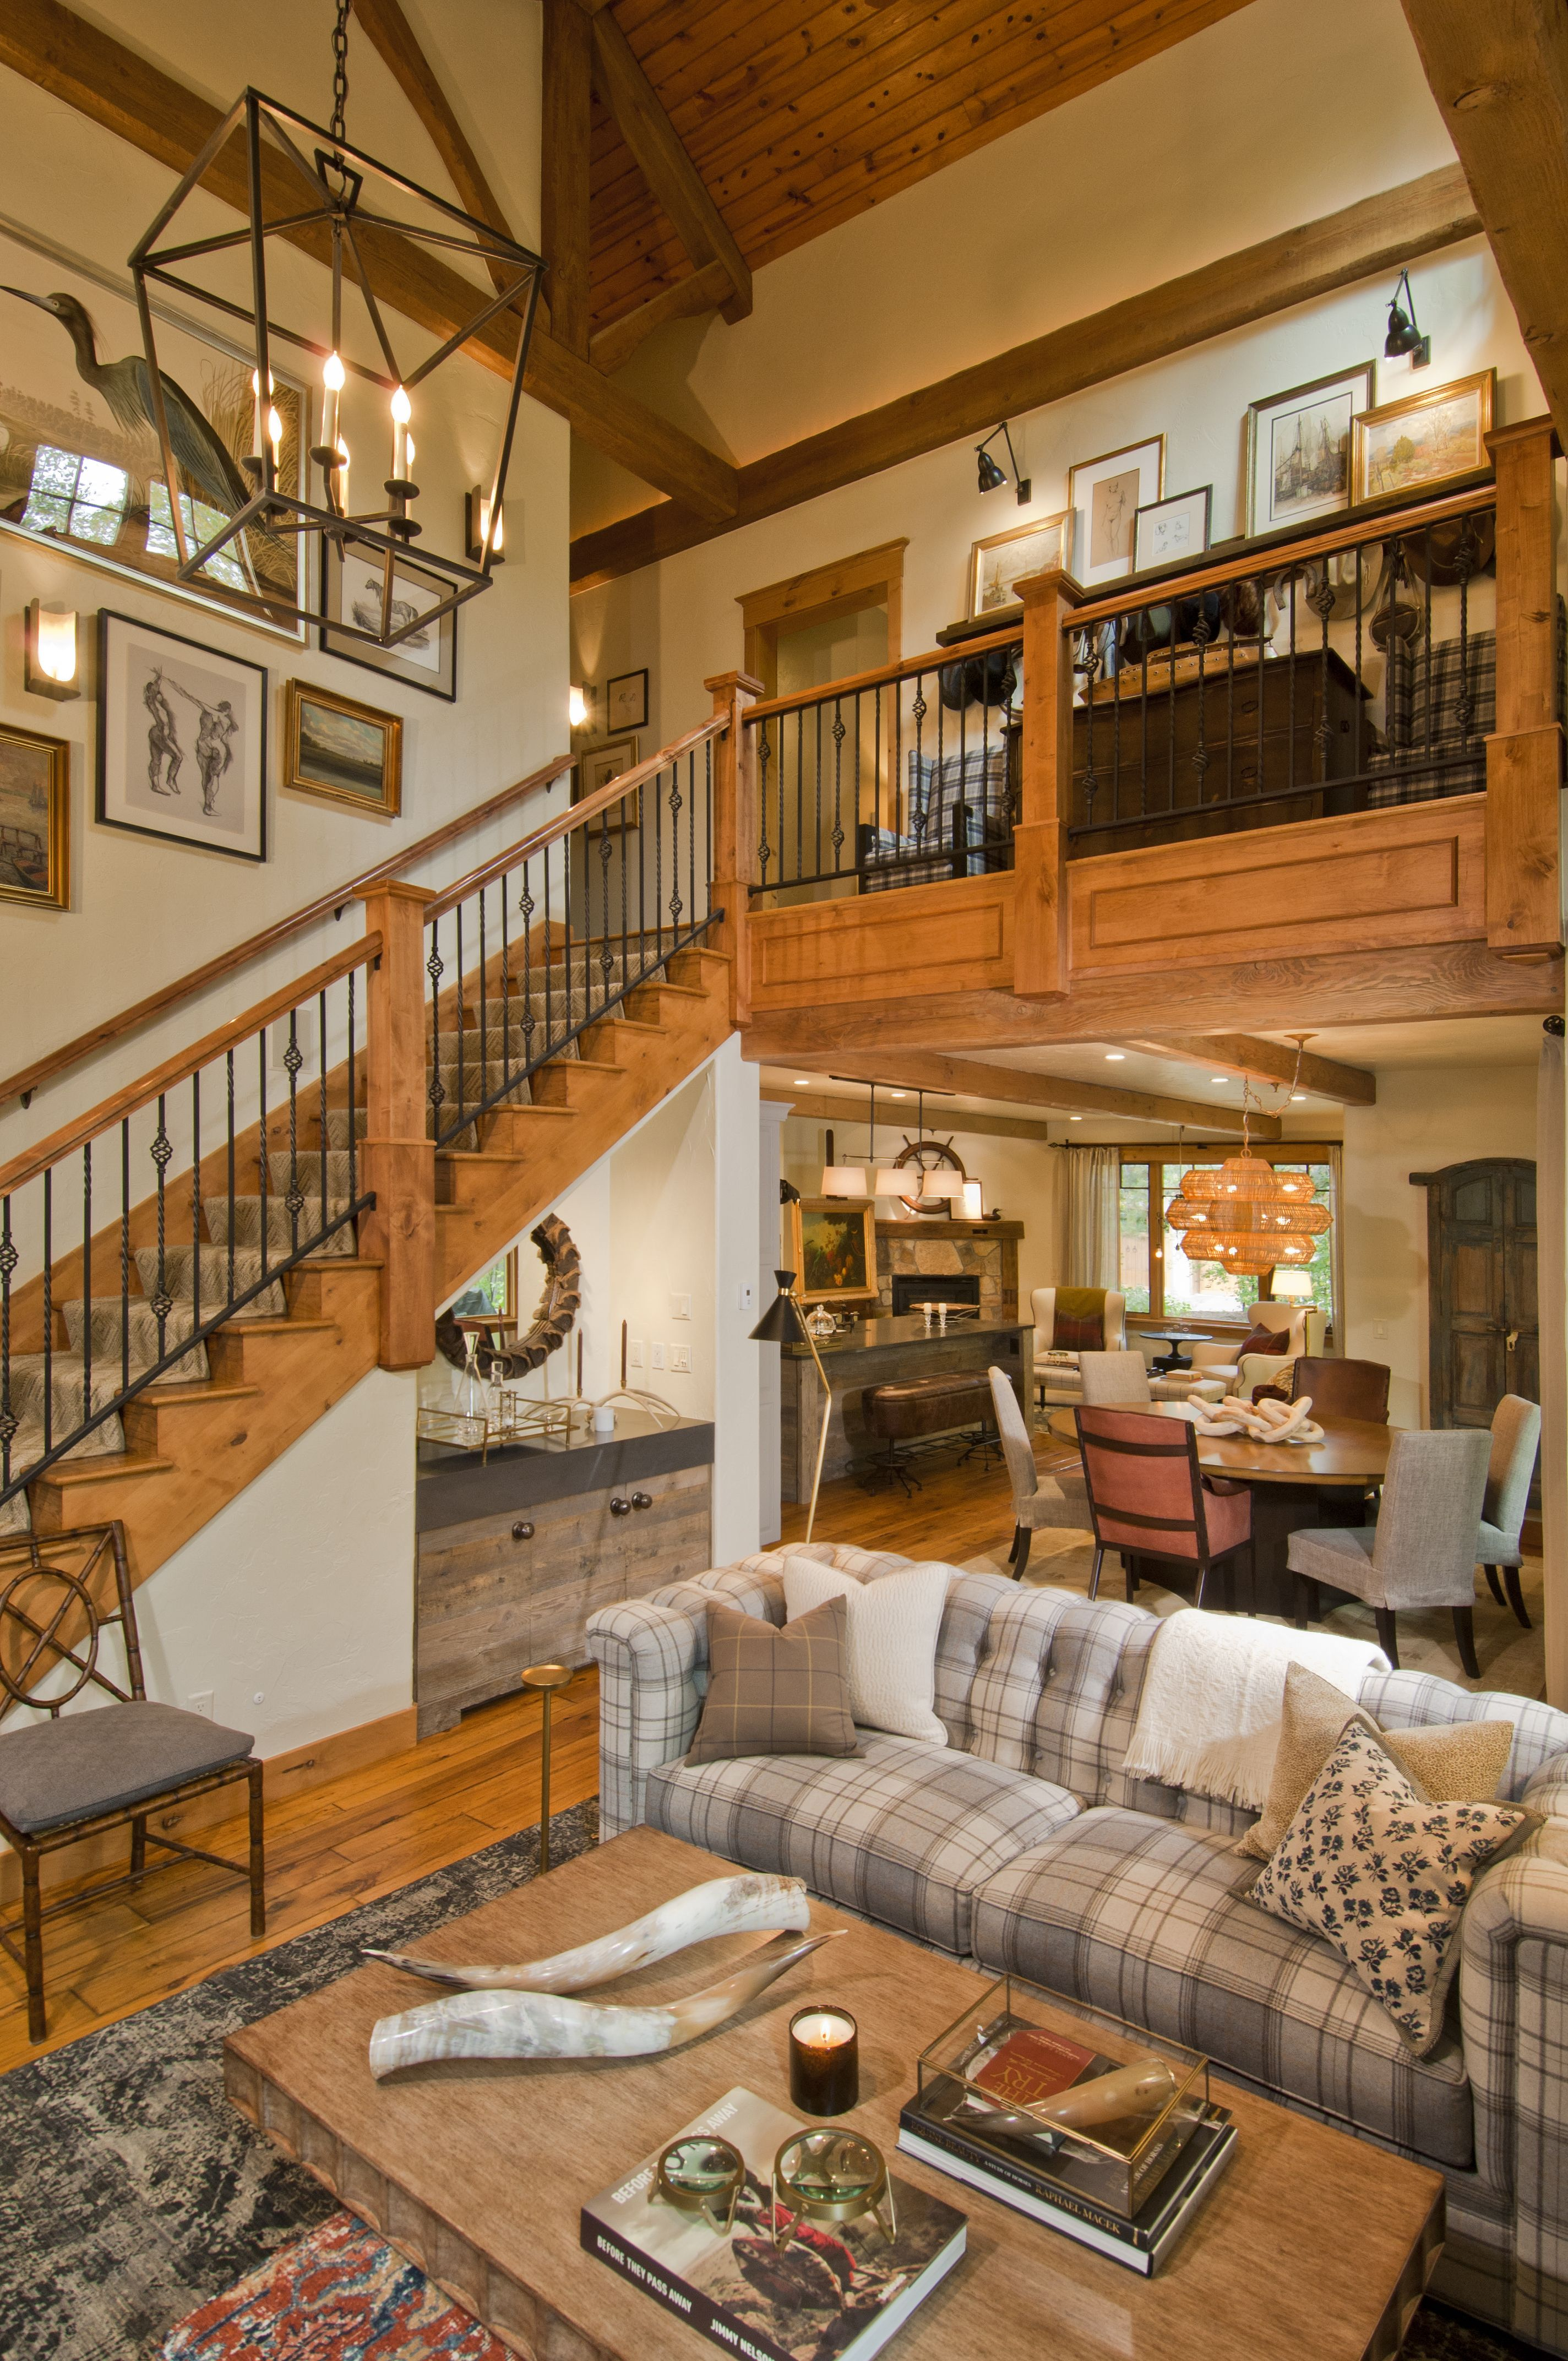 Modern Classic Living Room Interior Design: Living Room, Great Room, Mountain Home, Rustic, Eclectic